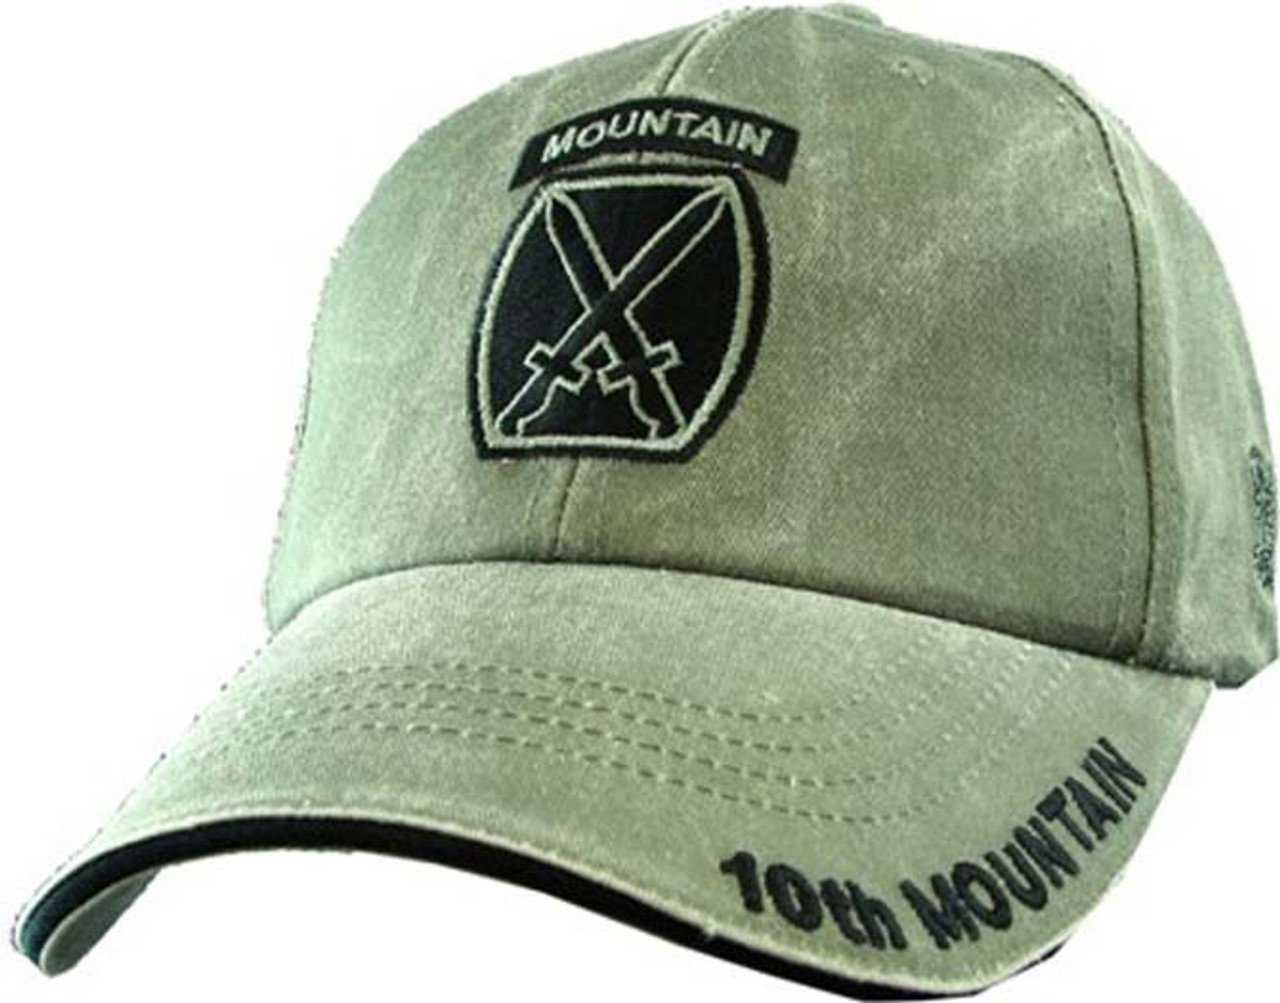 4ceb14d343608 US ARMY 10th MOUNTAIN Division - U.S. Army OD Green Military Baseball Cap  Hat